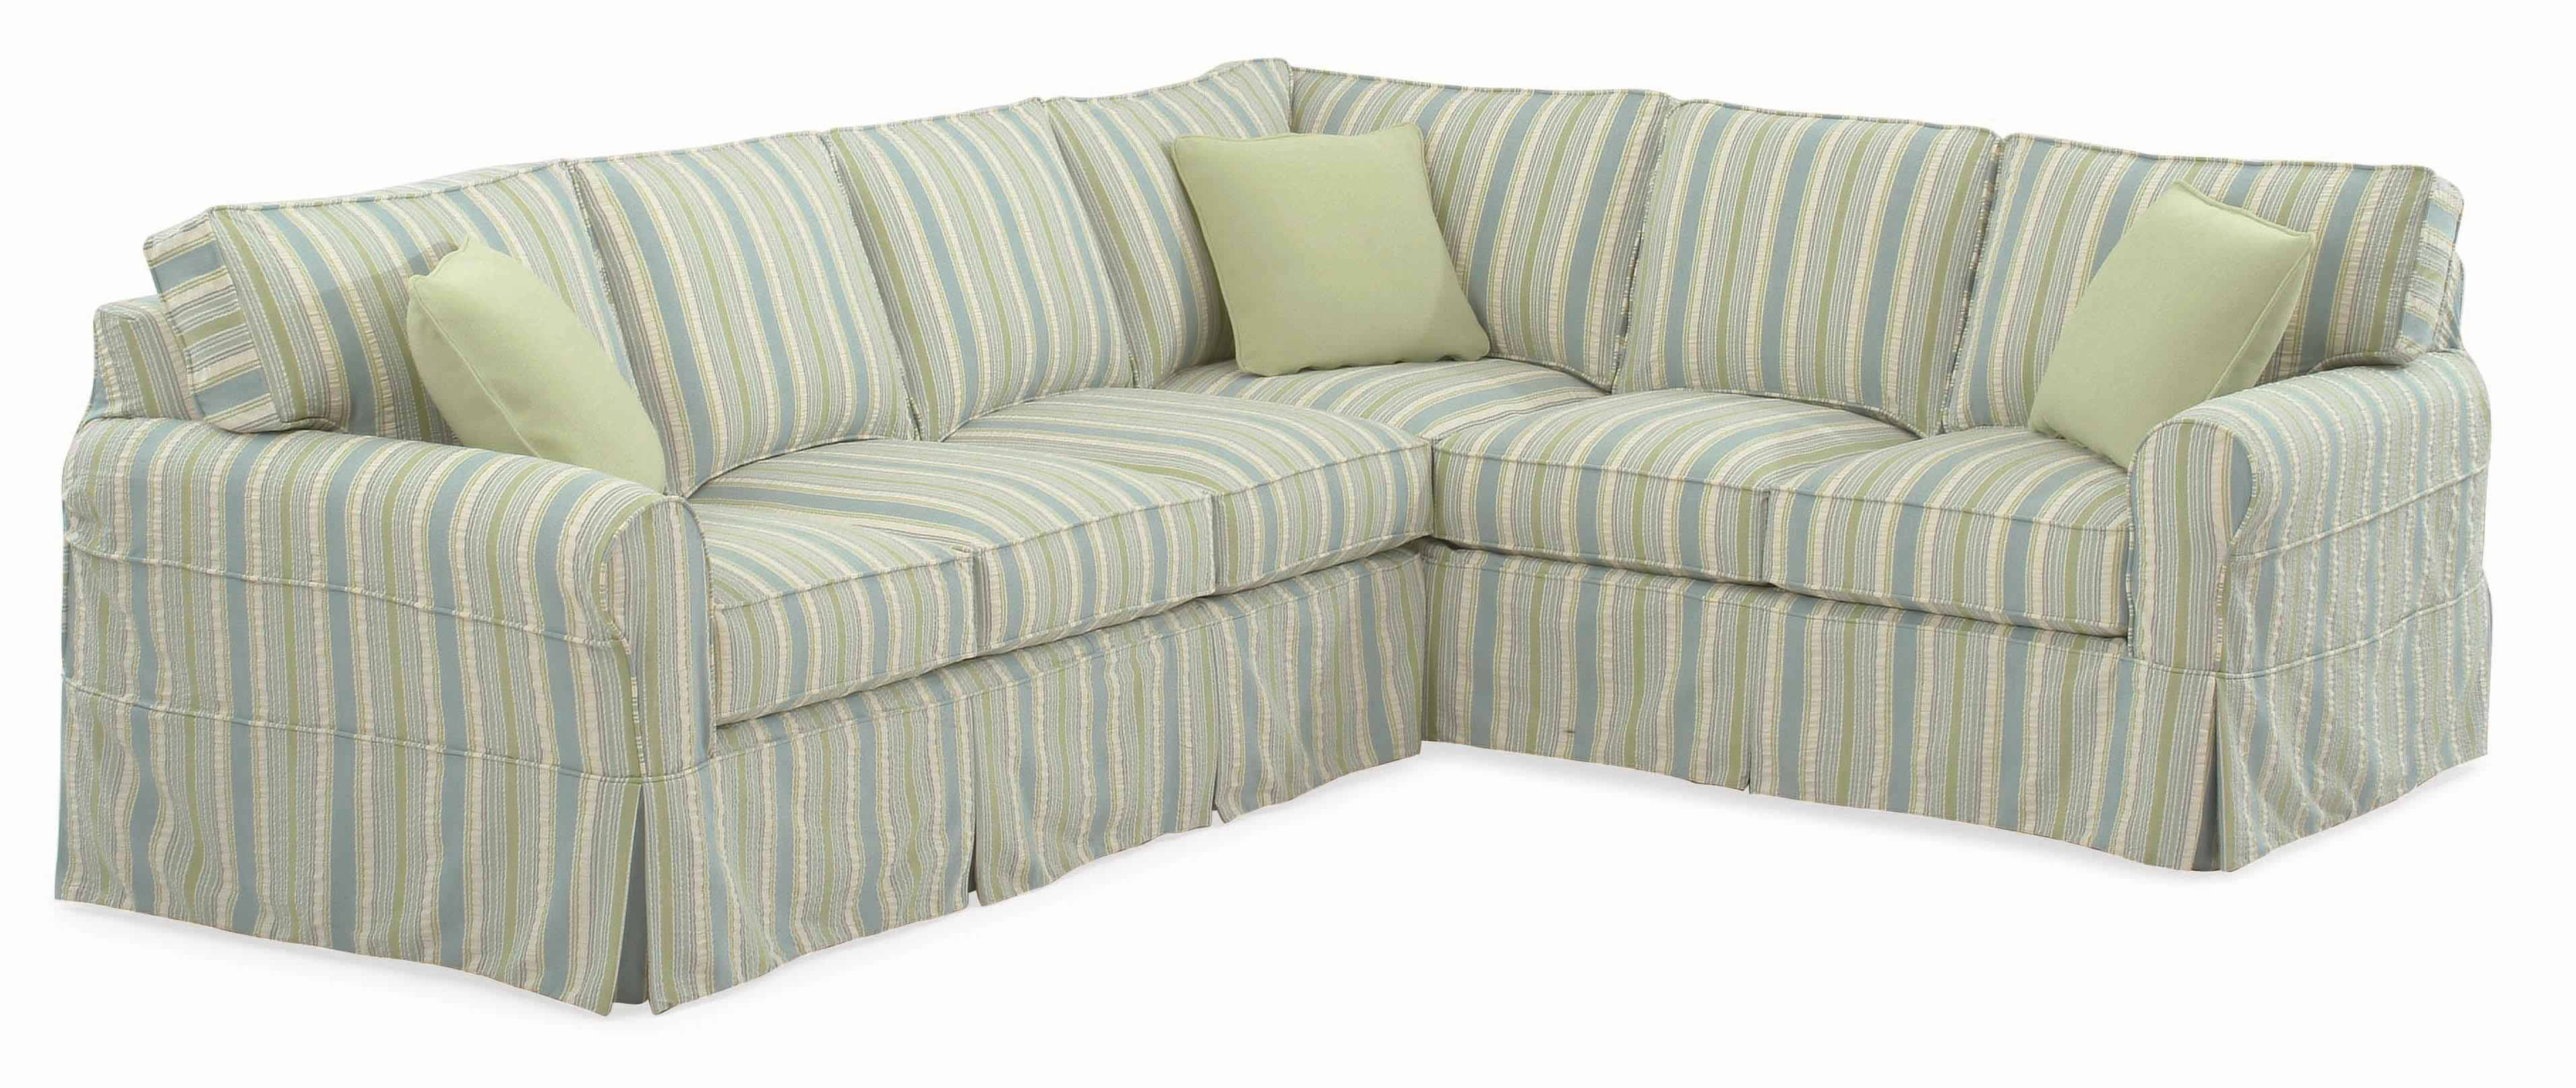 728 Sectional Sofa with Slipcover by Braxton Culler at Alison Craig Home Furnishings